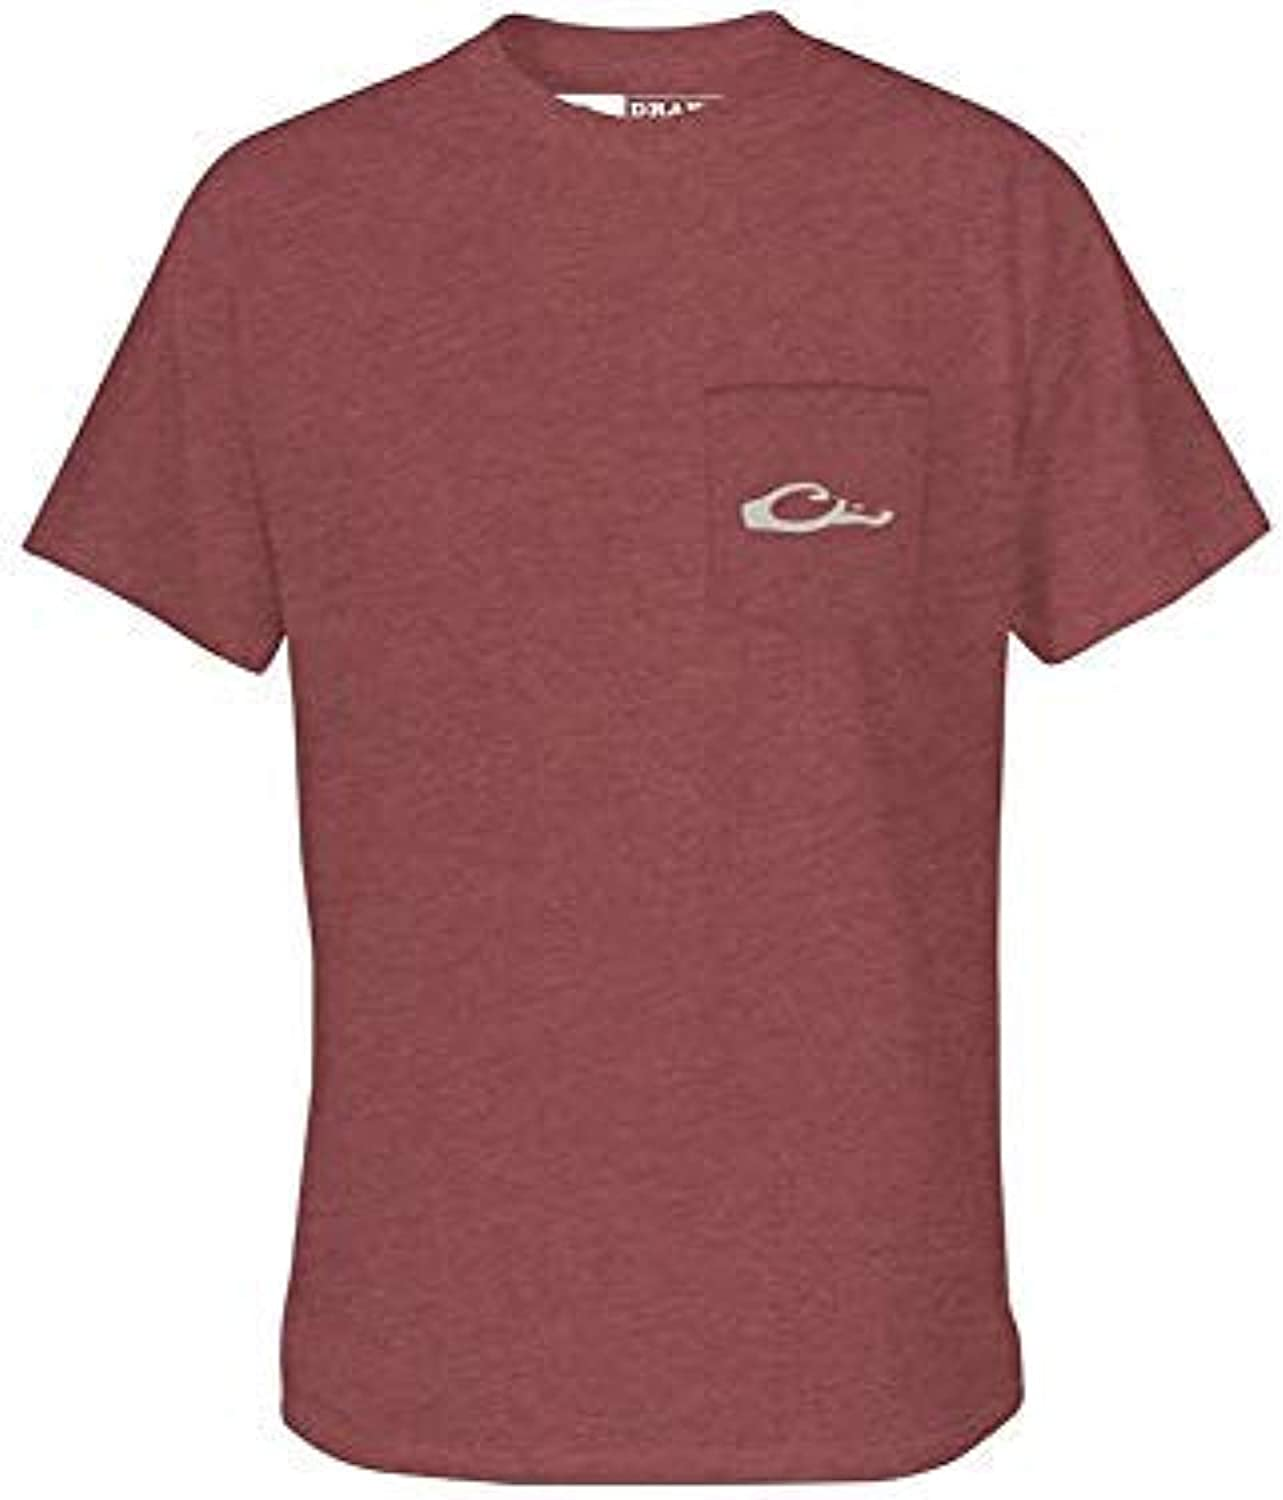 B07VDTX9ZS Drake Standing Black Lab T S/S Maroon Heather LG 51G2FgVicZL